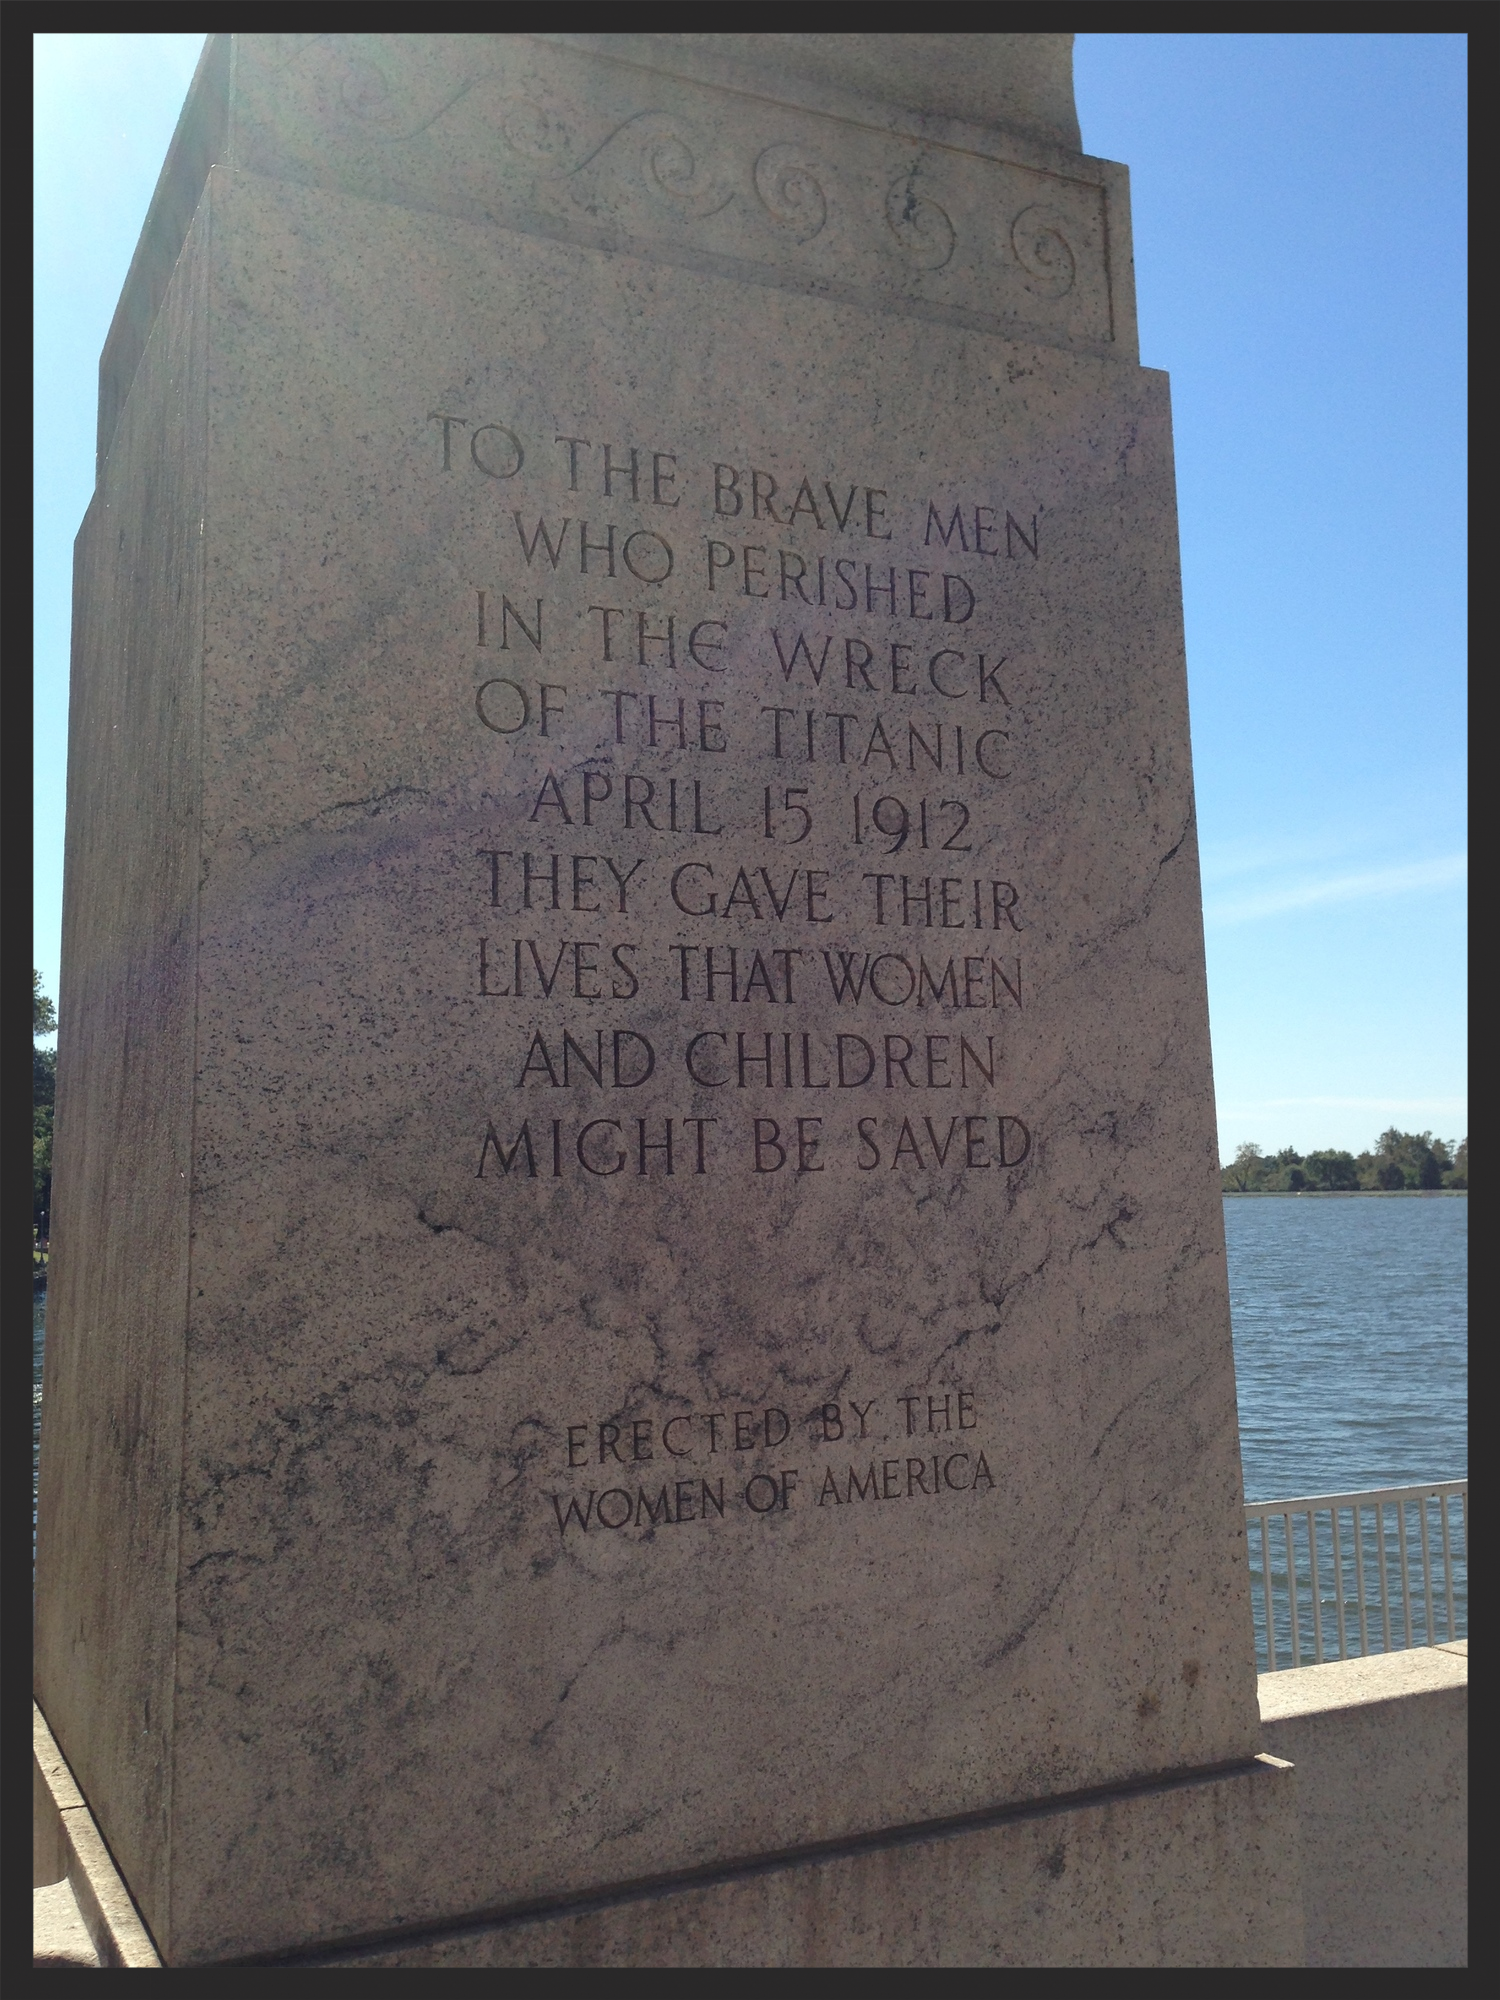 The inscription on the front side of the memorial.